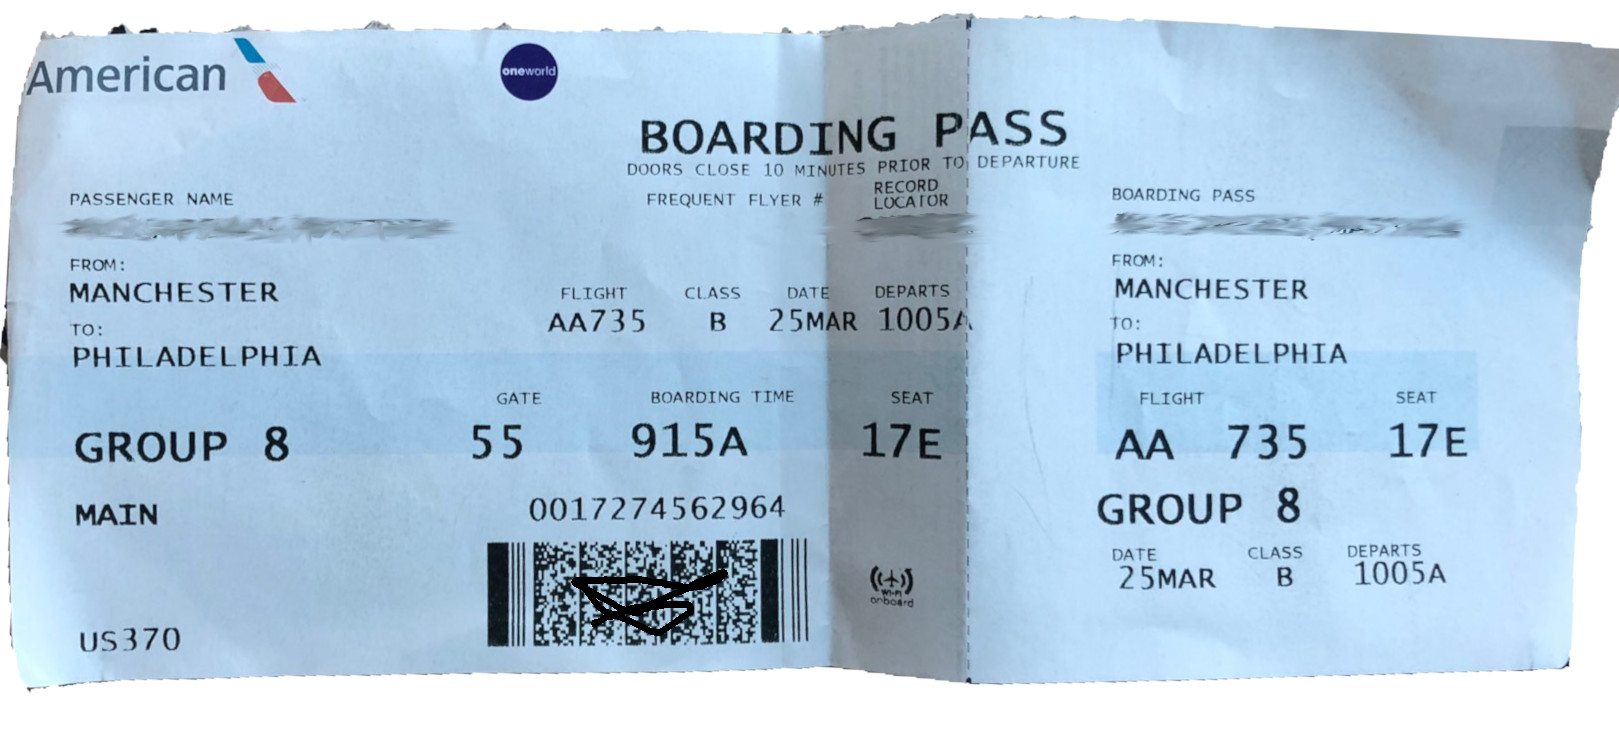 Matt's boarding pass